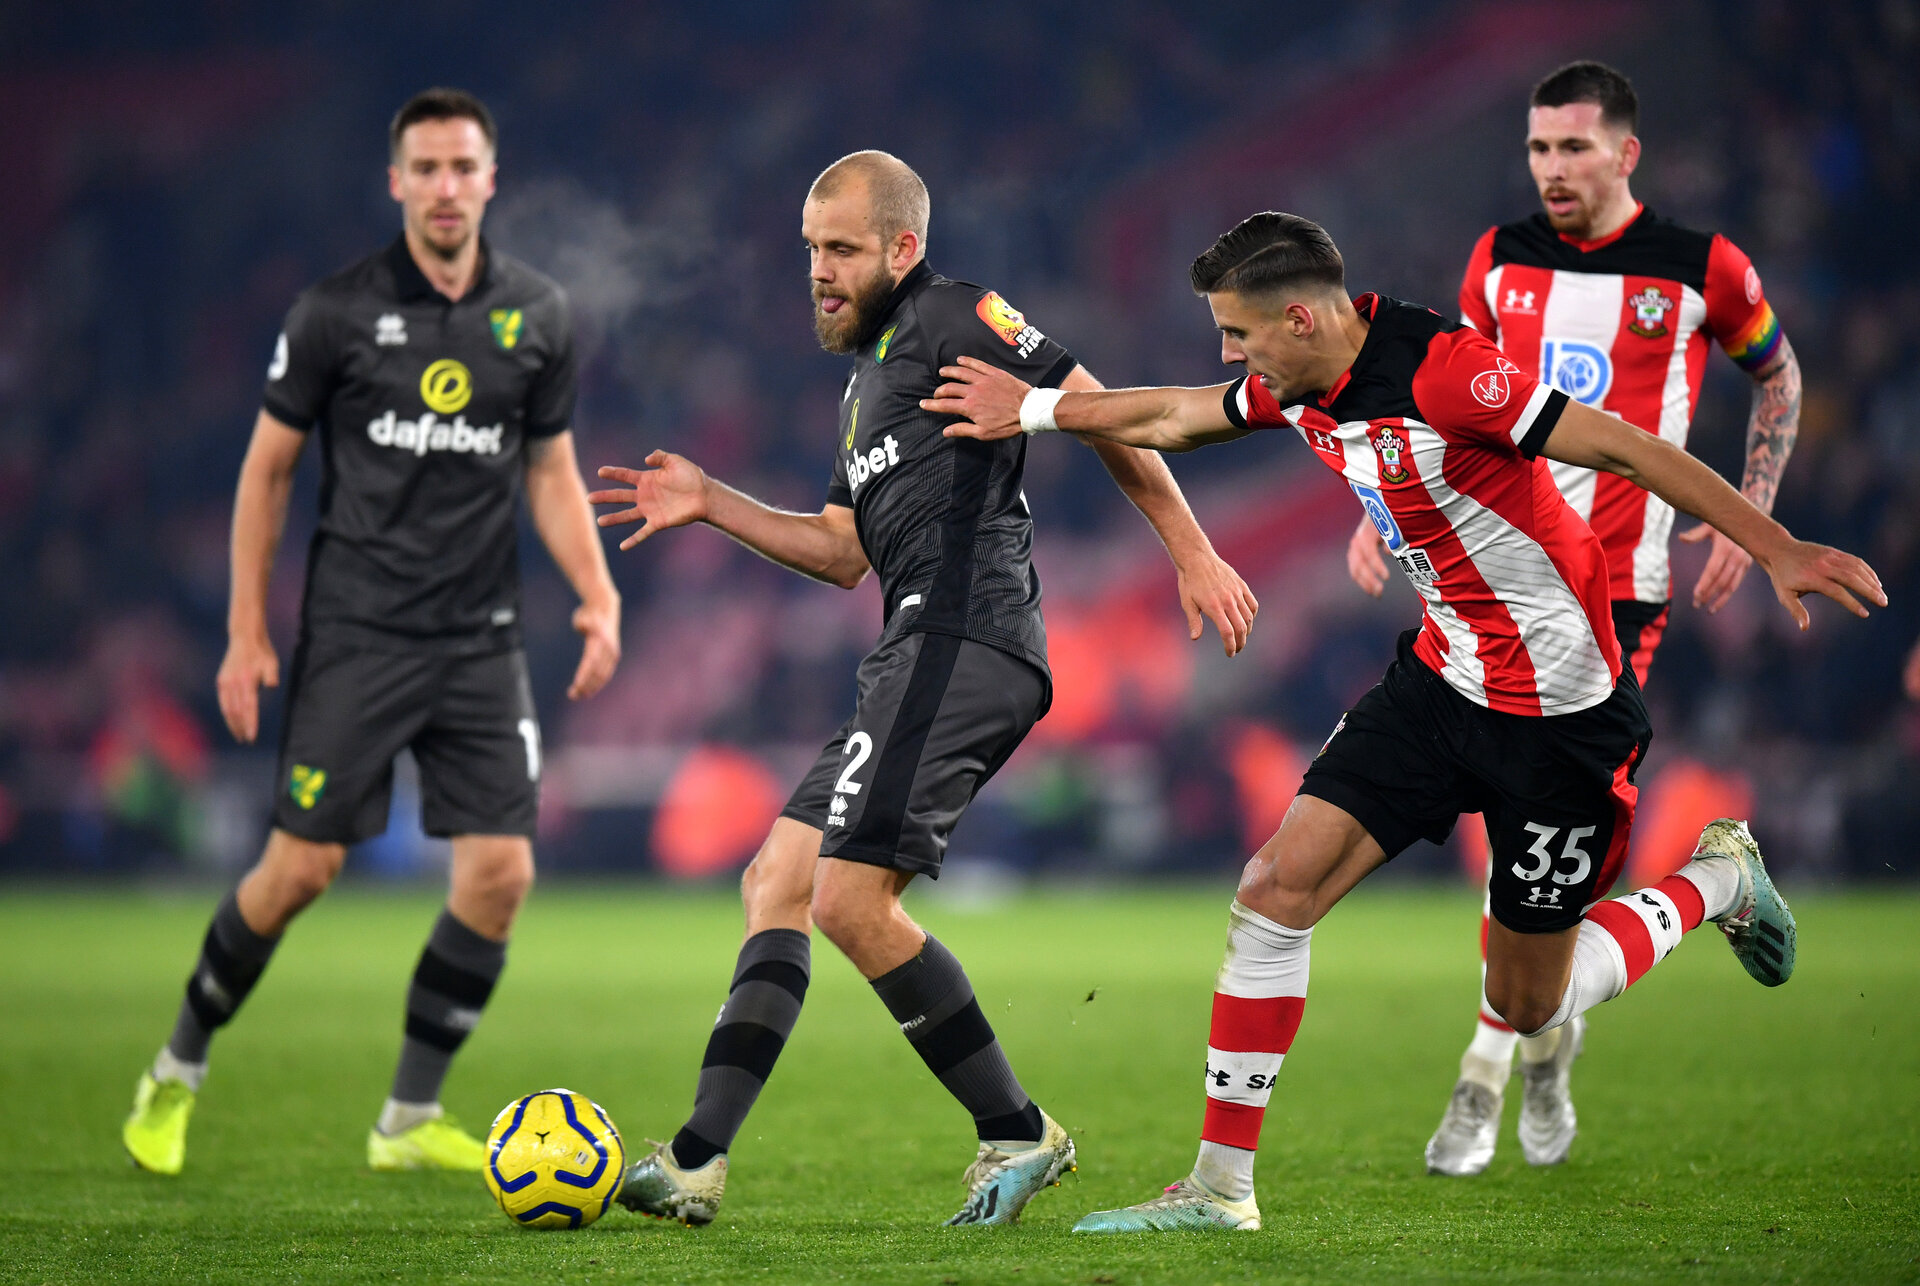 SOUTHAMPTON, ENGLAND - DECEMBER 04: Teemu Pukki of Norwich City battles for possession with Jan Bednarek of Southampton during the Premier League match between Southampton FC and Norwich City at St Mary's Stadium on December 04, 2019 in Southampton, United Kingdom. (Photo by Dan Mullan/Getty Images)